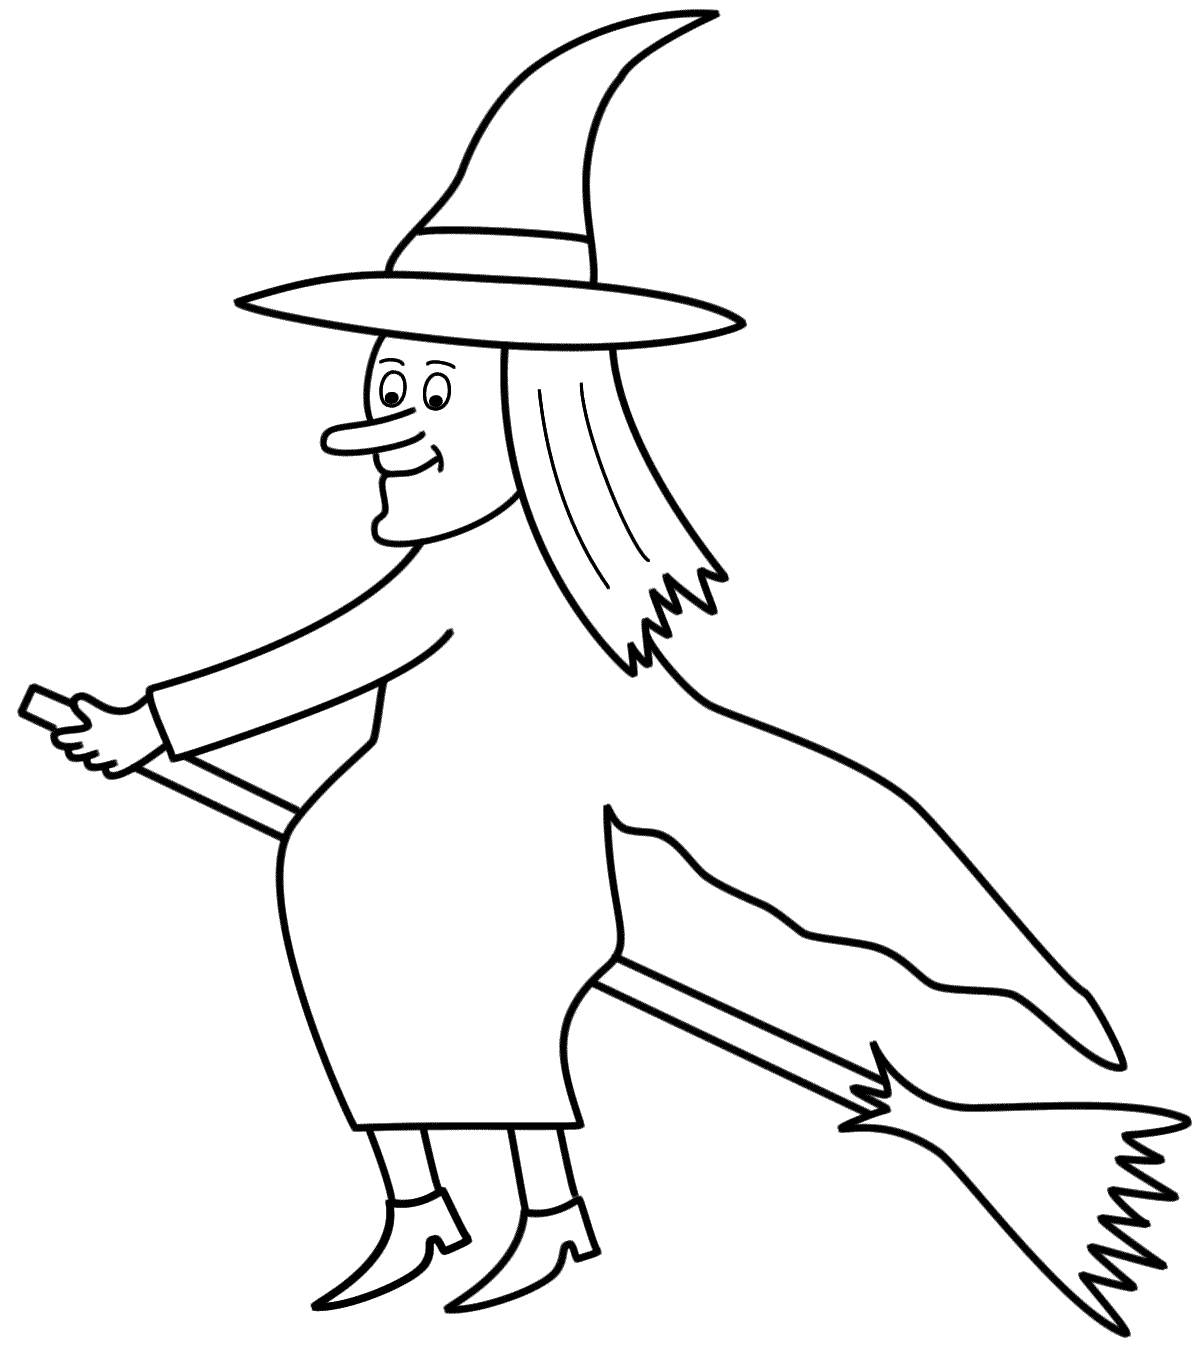 witch coloring pages | Witch Flying With Bats Coloring Page ...